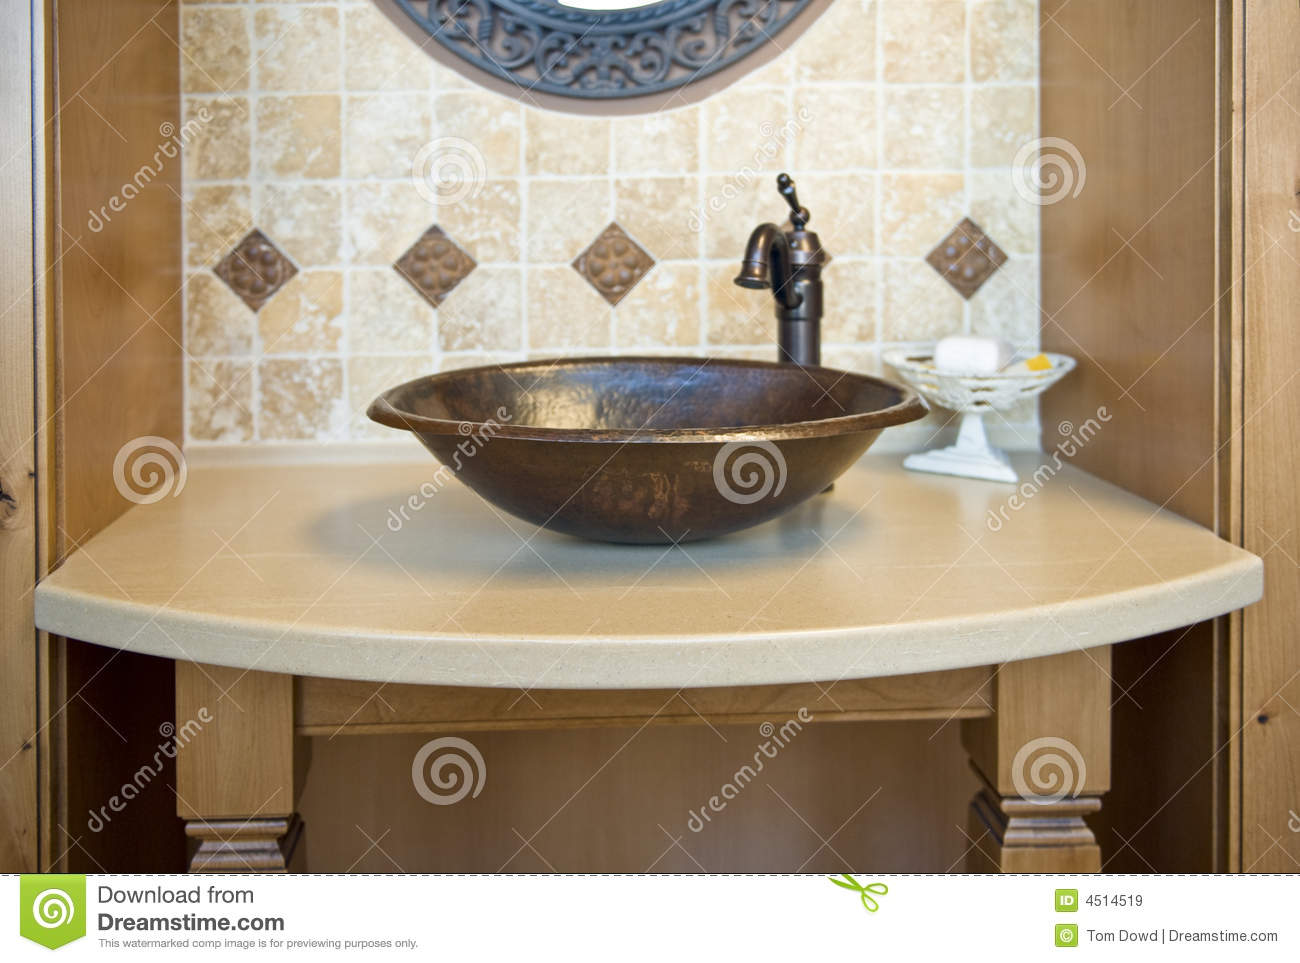 Decorative Bathroom Sinks : Decorative Bathroom Sink Royalty Free Stock Images - Image: 4514519